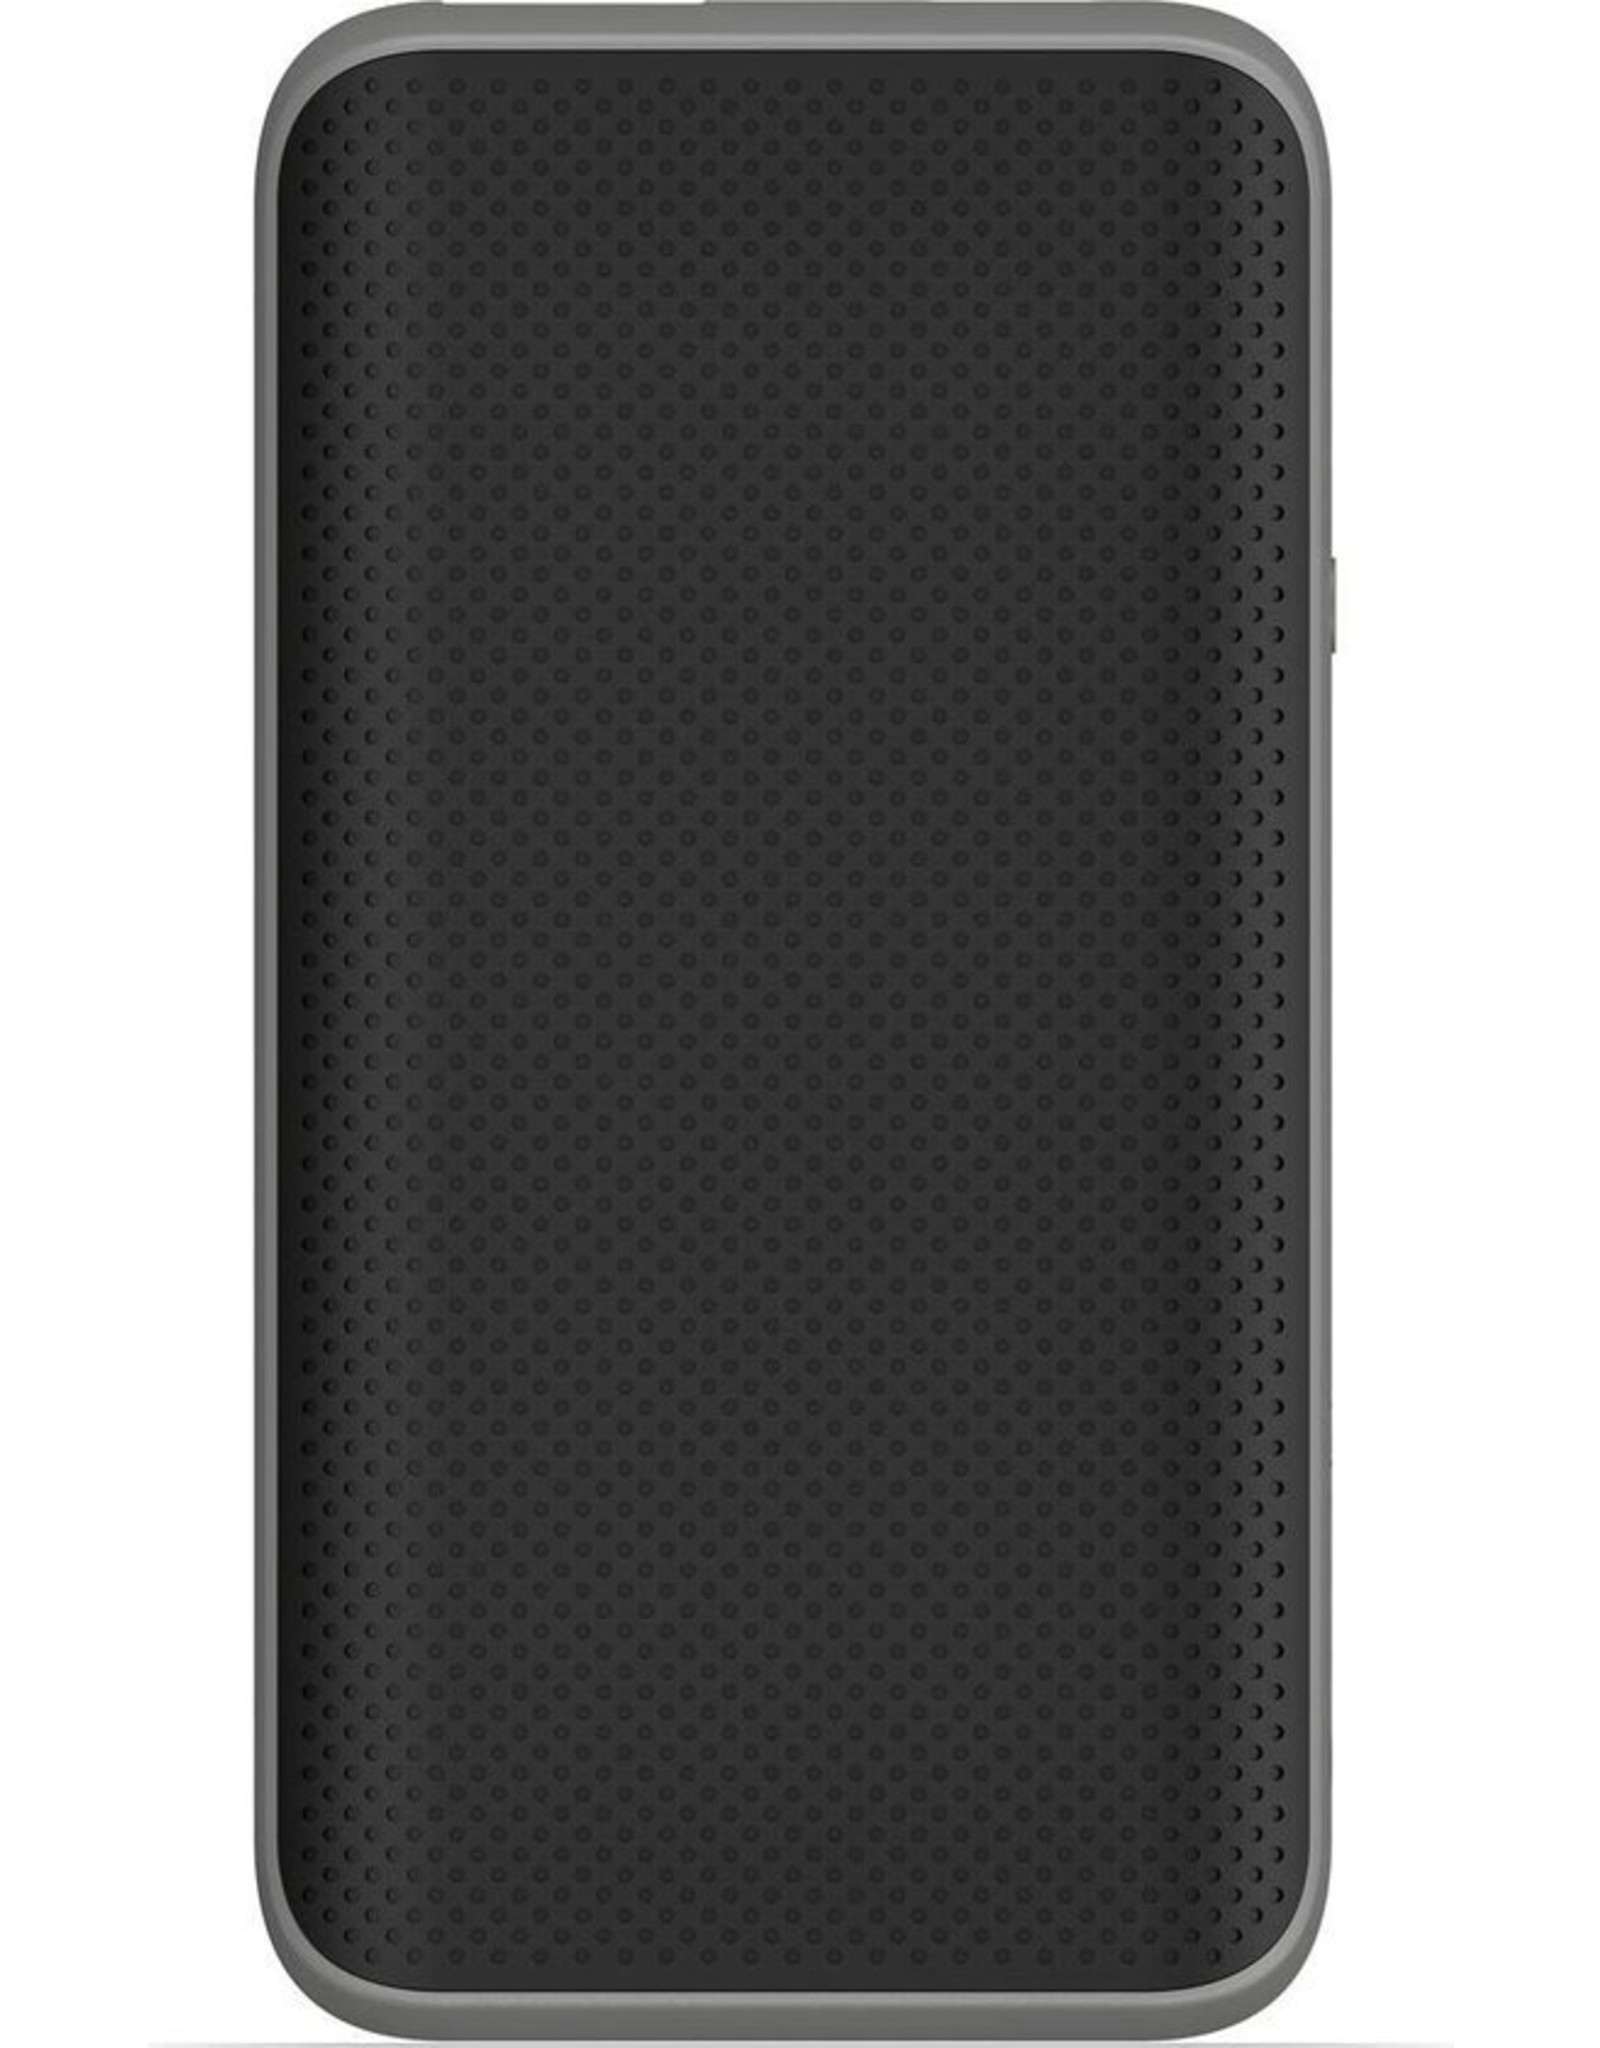 Mophie Mophie Powerstation PD 10050 Black